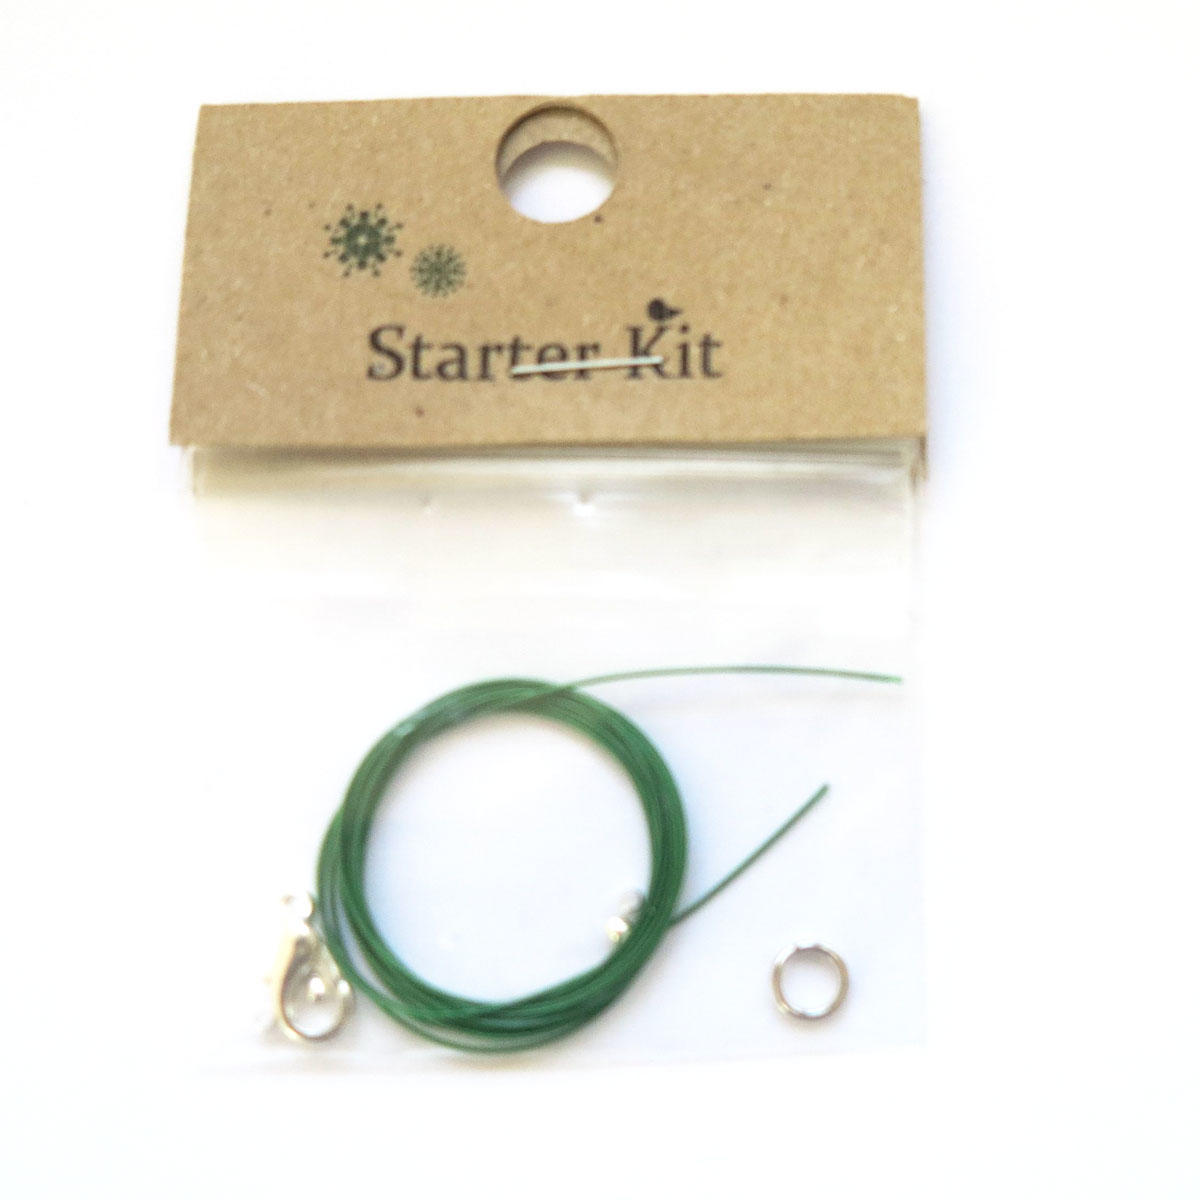 Emerald Necklace Starter Kit or Mending Kit